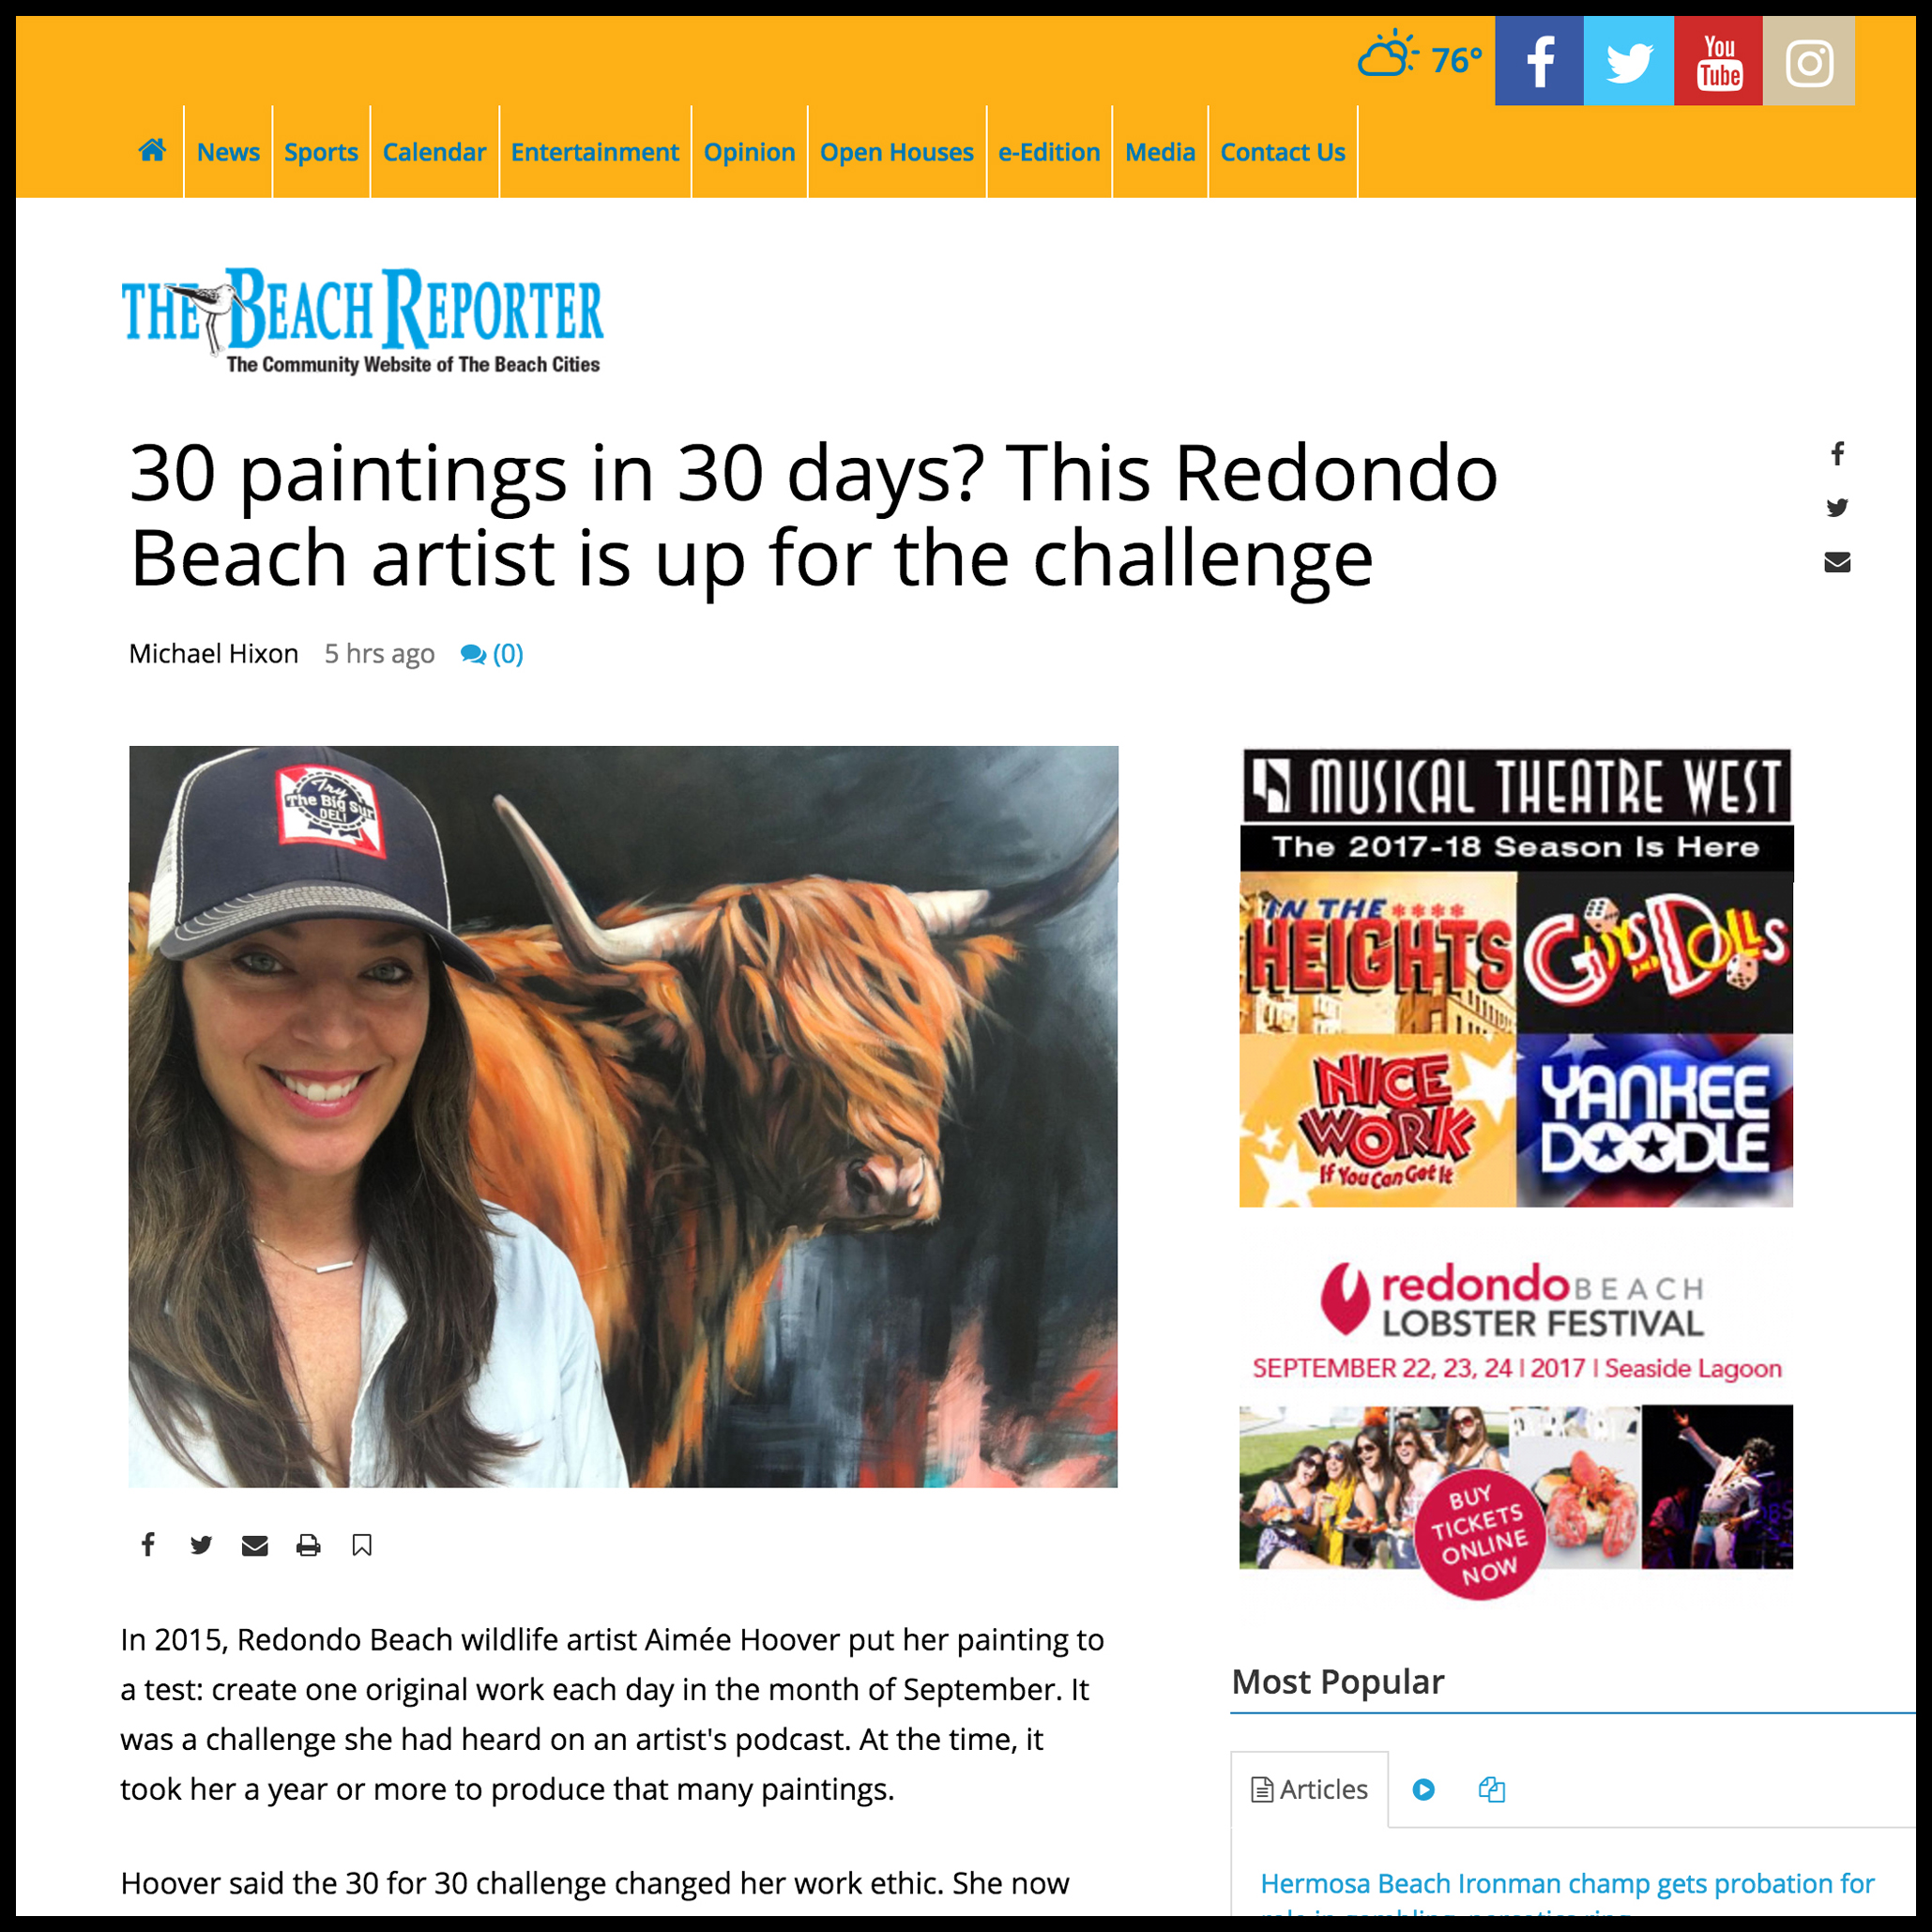 The Beach Reporter - September 201730 Painting in 30 Days?tbrnews.com